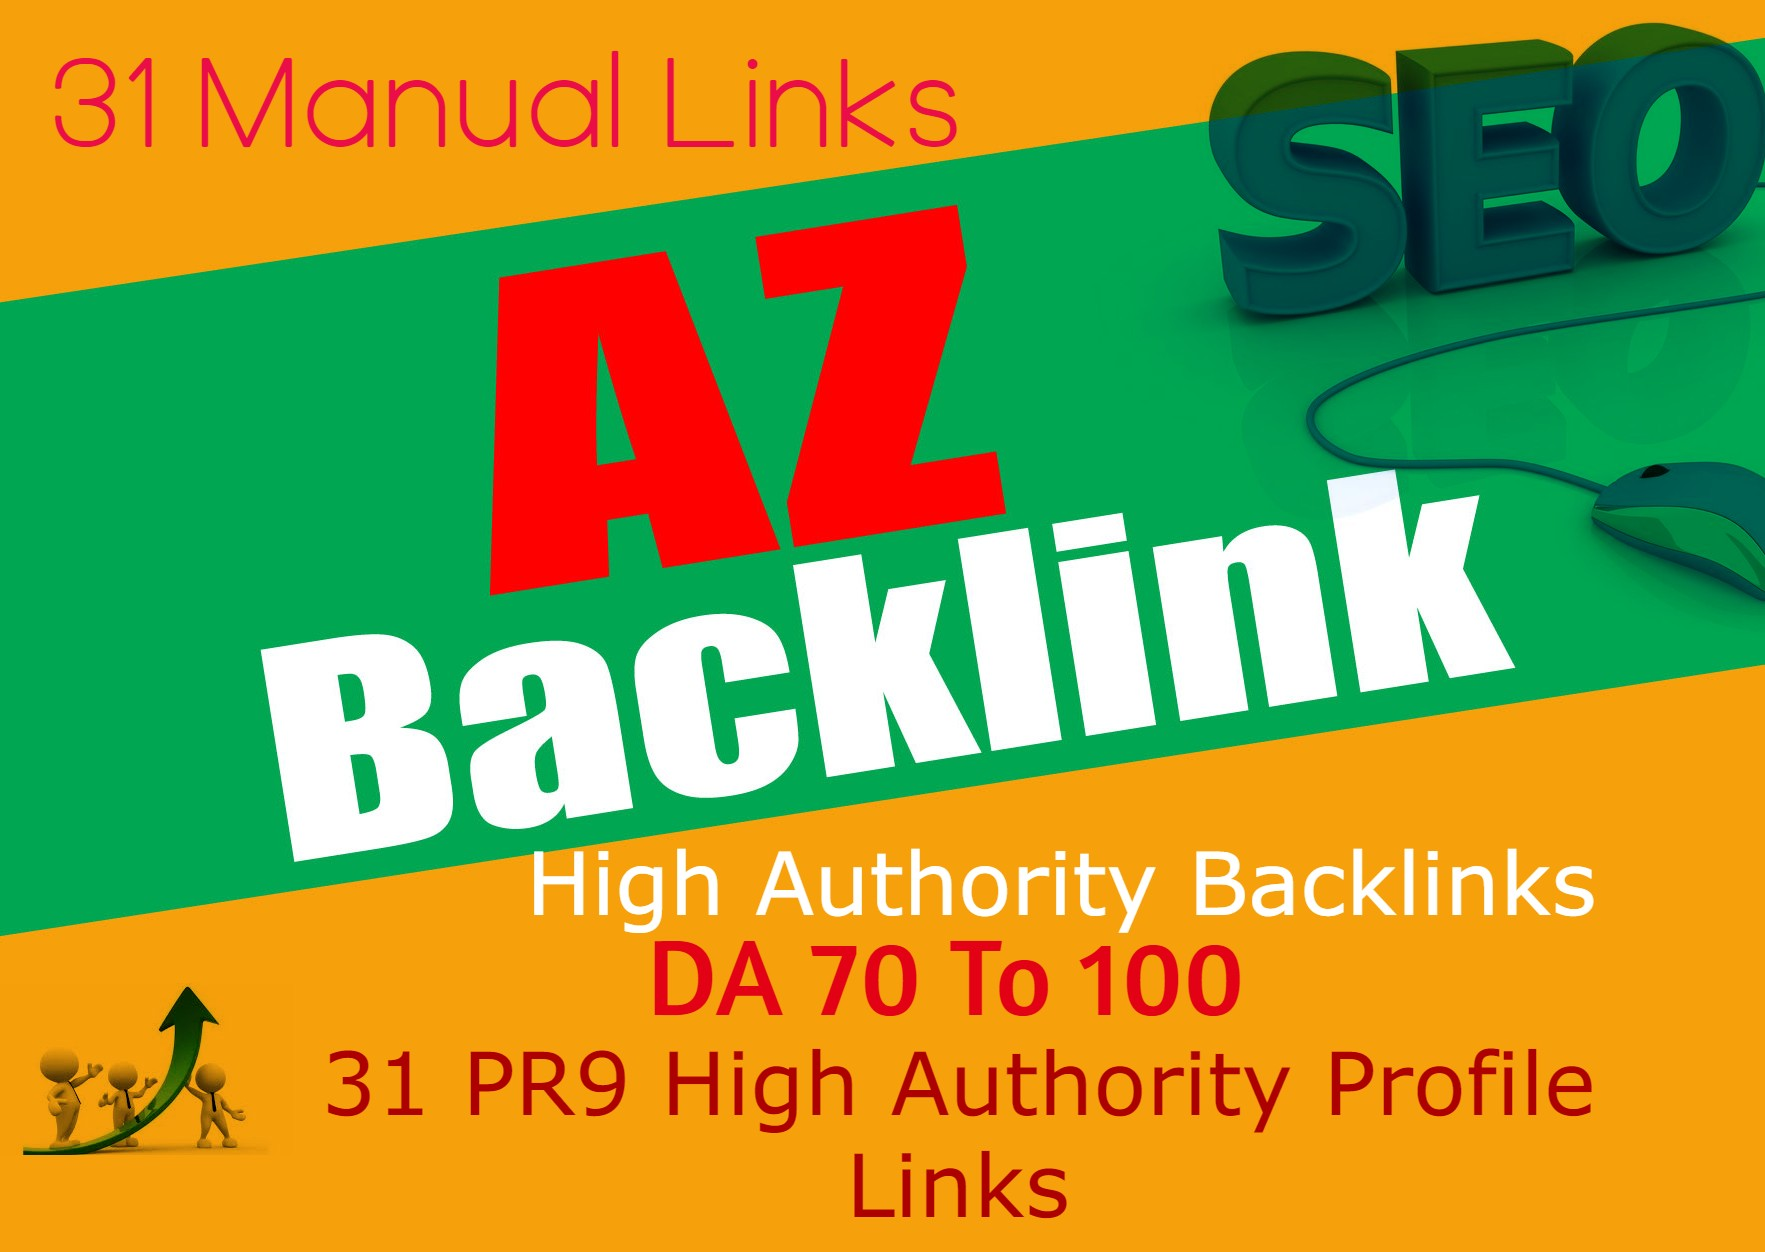 31 Authority Backlinks From 31 HQ Profile Links